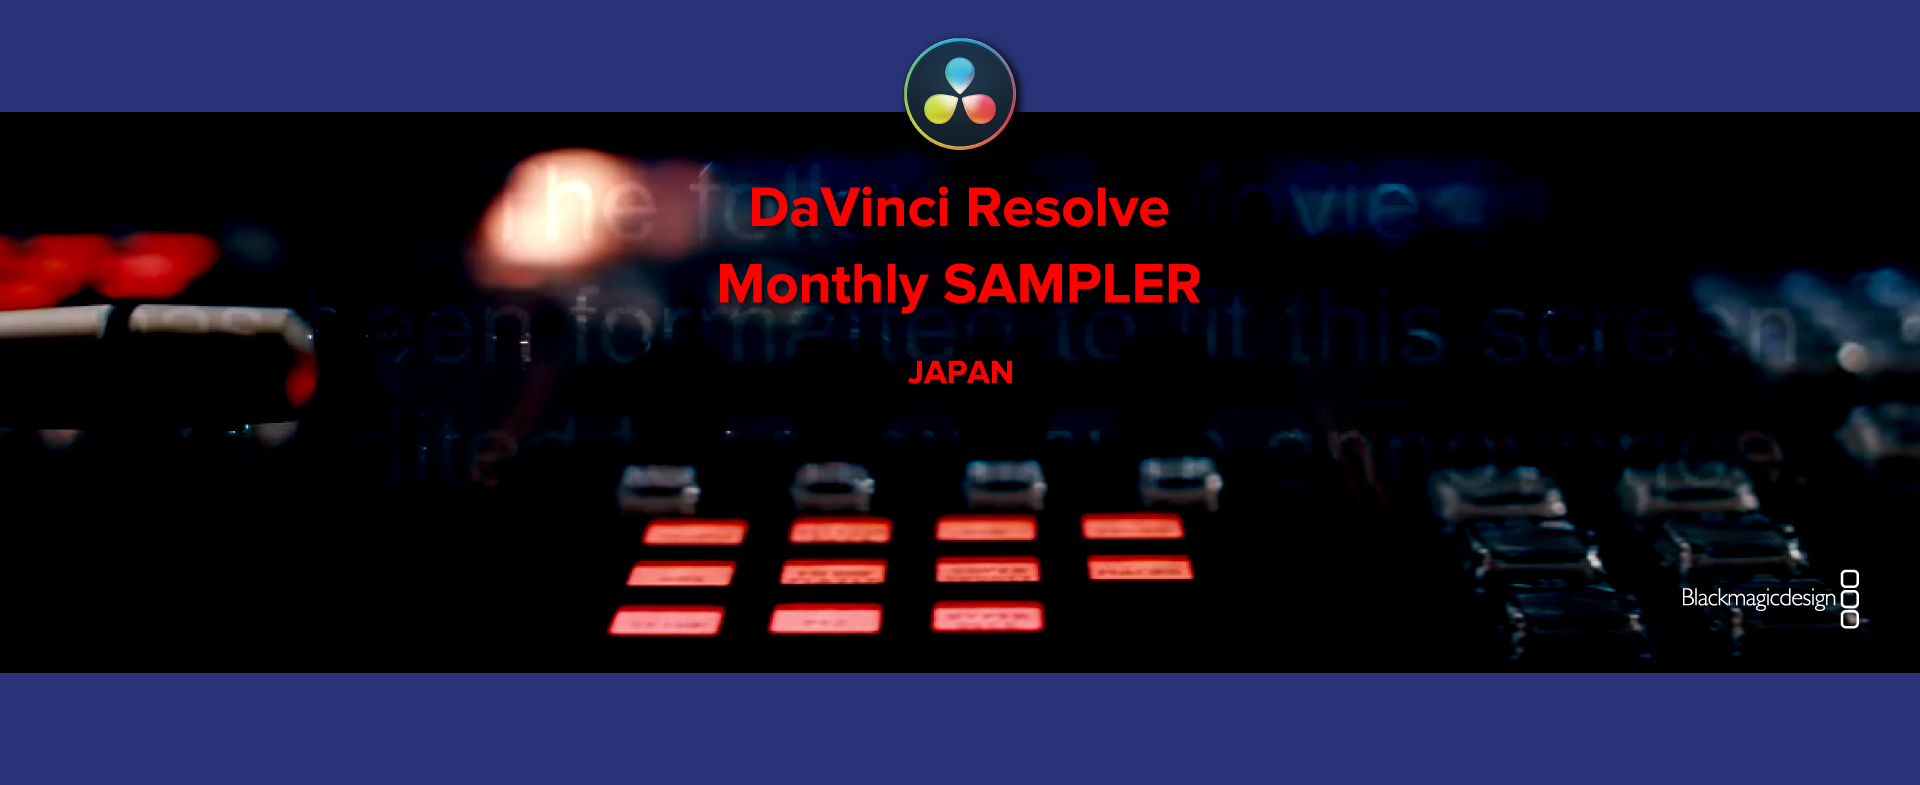 DaVinci Resolve Monthly SAMPLER Vol.9